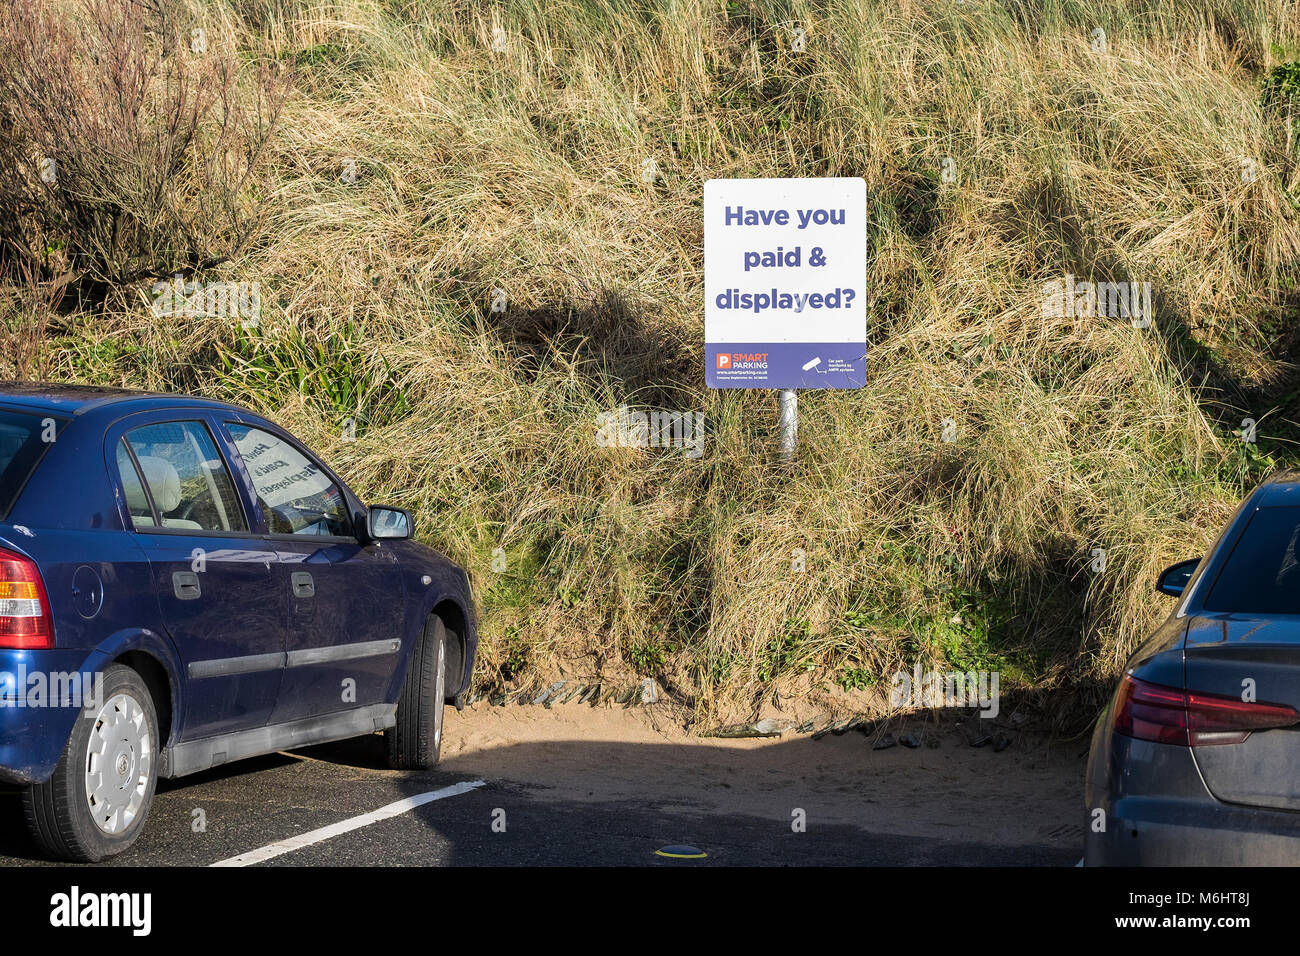 A parking sign owned by Smart Parking in Fistral Beach car park in Newquay Cornwall. - Stock Image